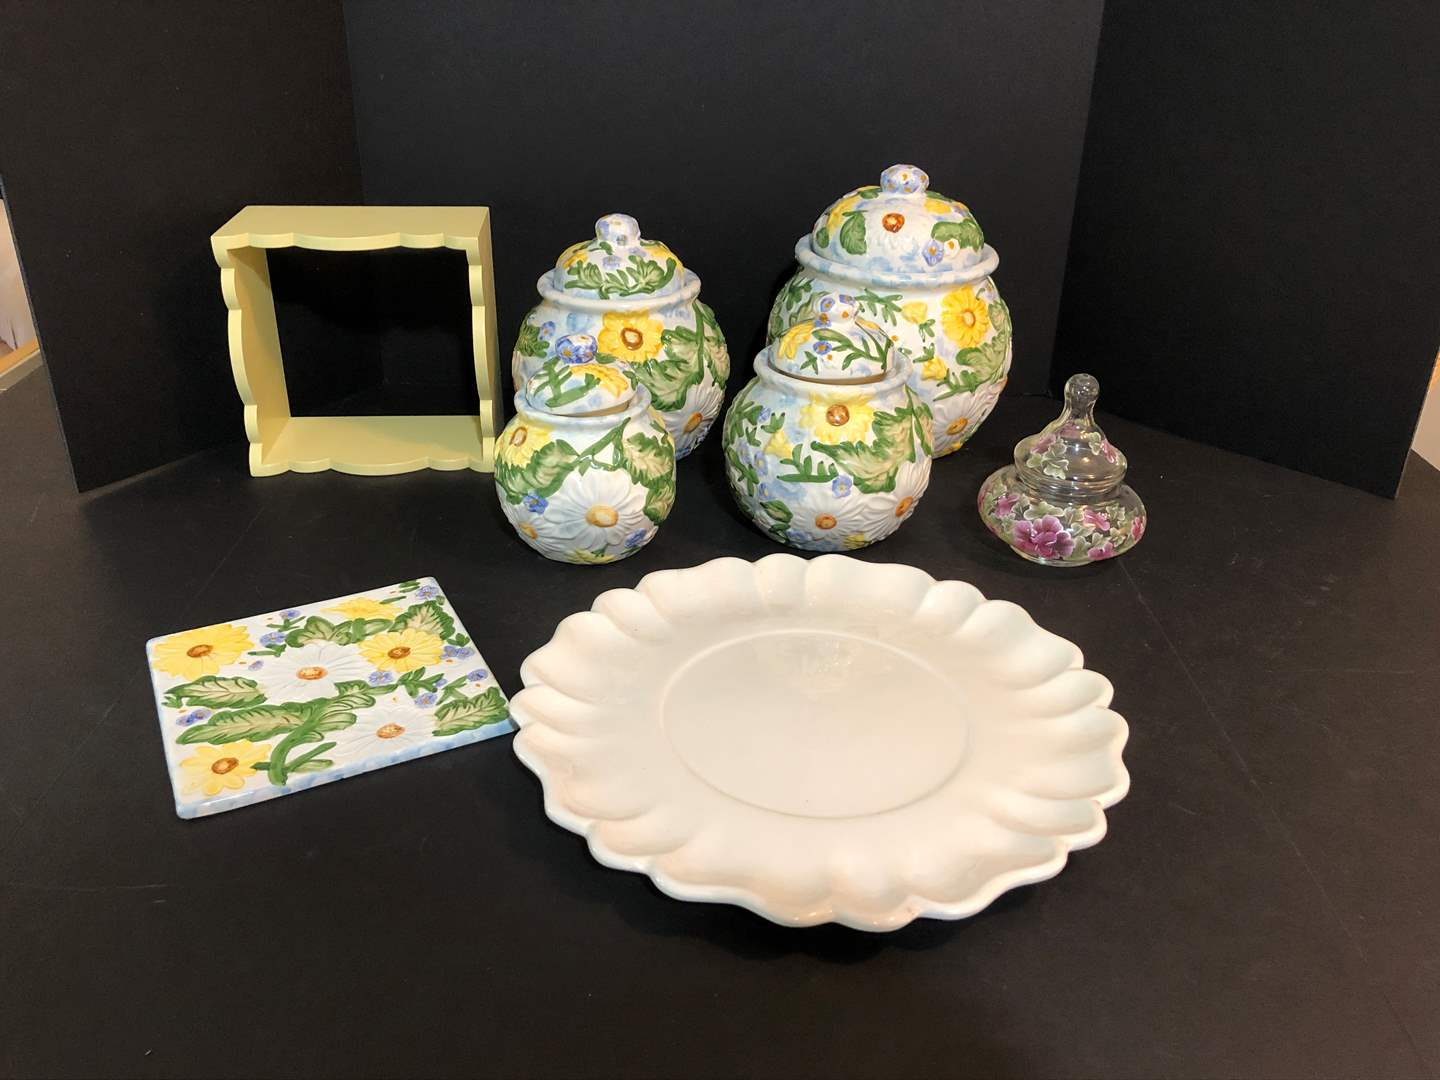 Lot # 52 - Canisters, CALF USA H16 Serving Dish, Small Shelf & Glass Candy Dish (main image)